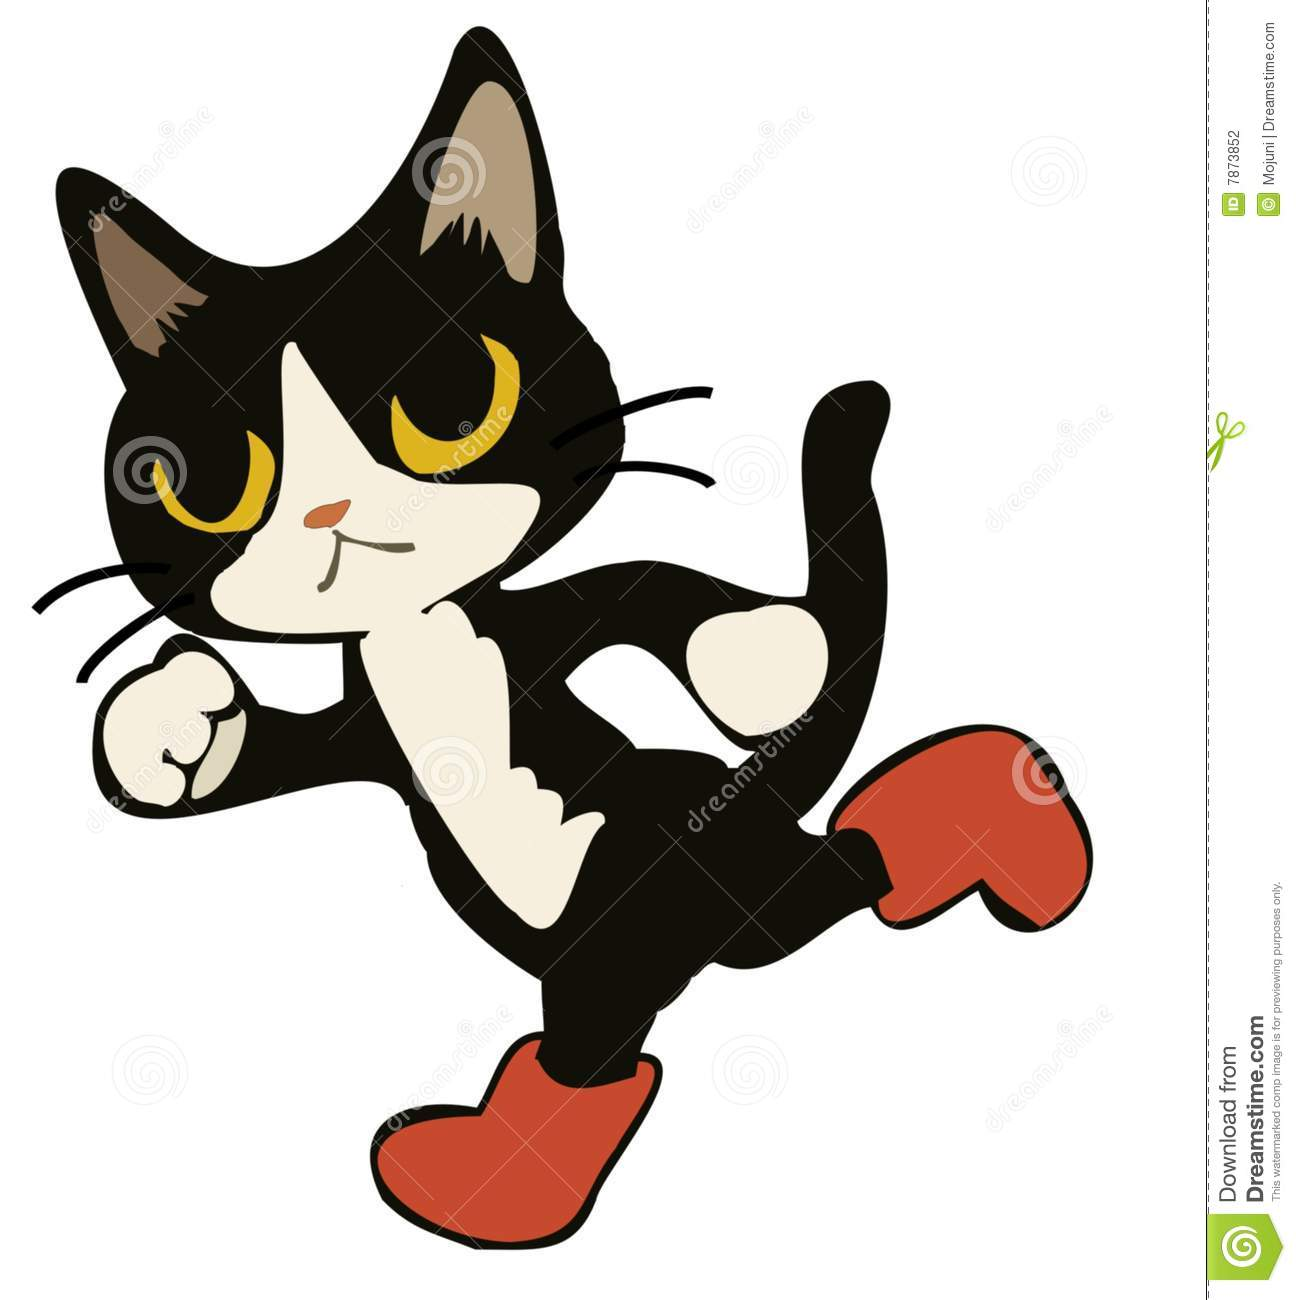 Puss in boots clipart.